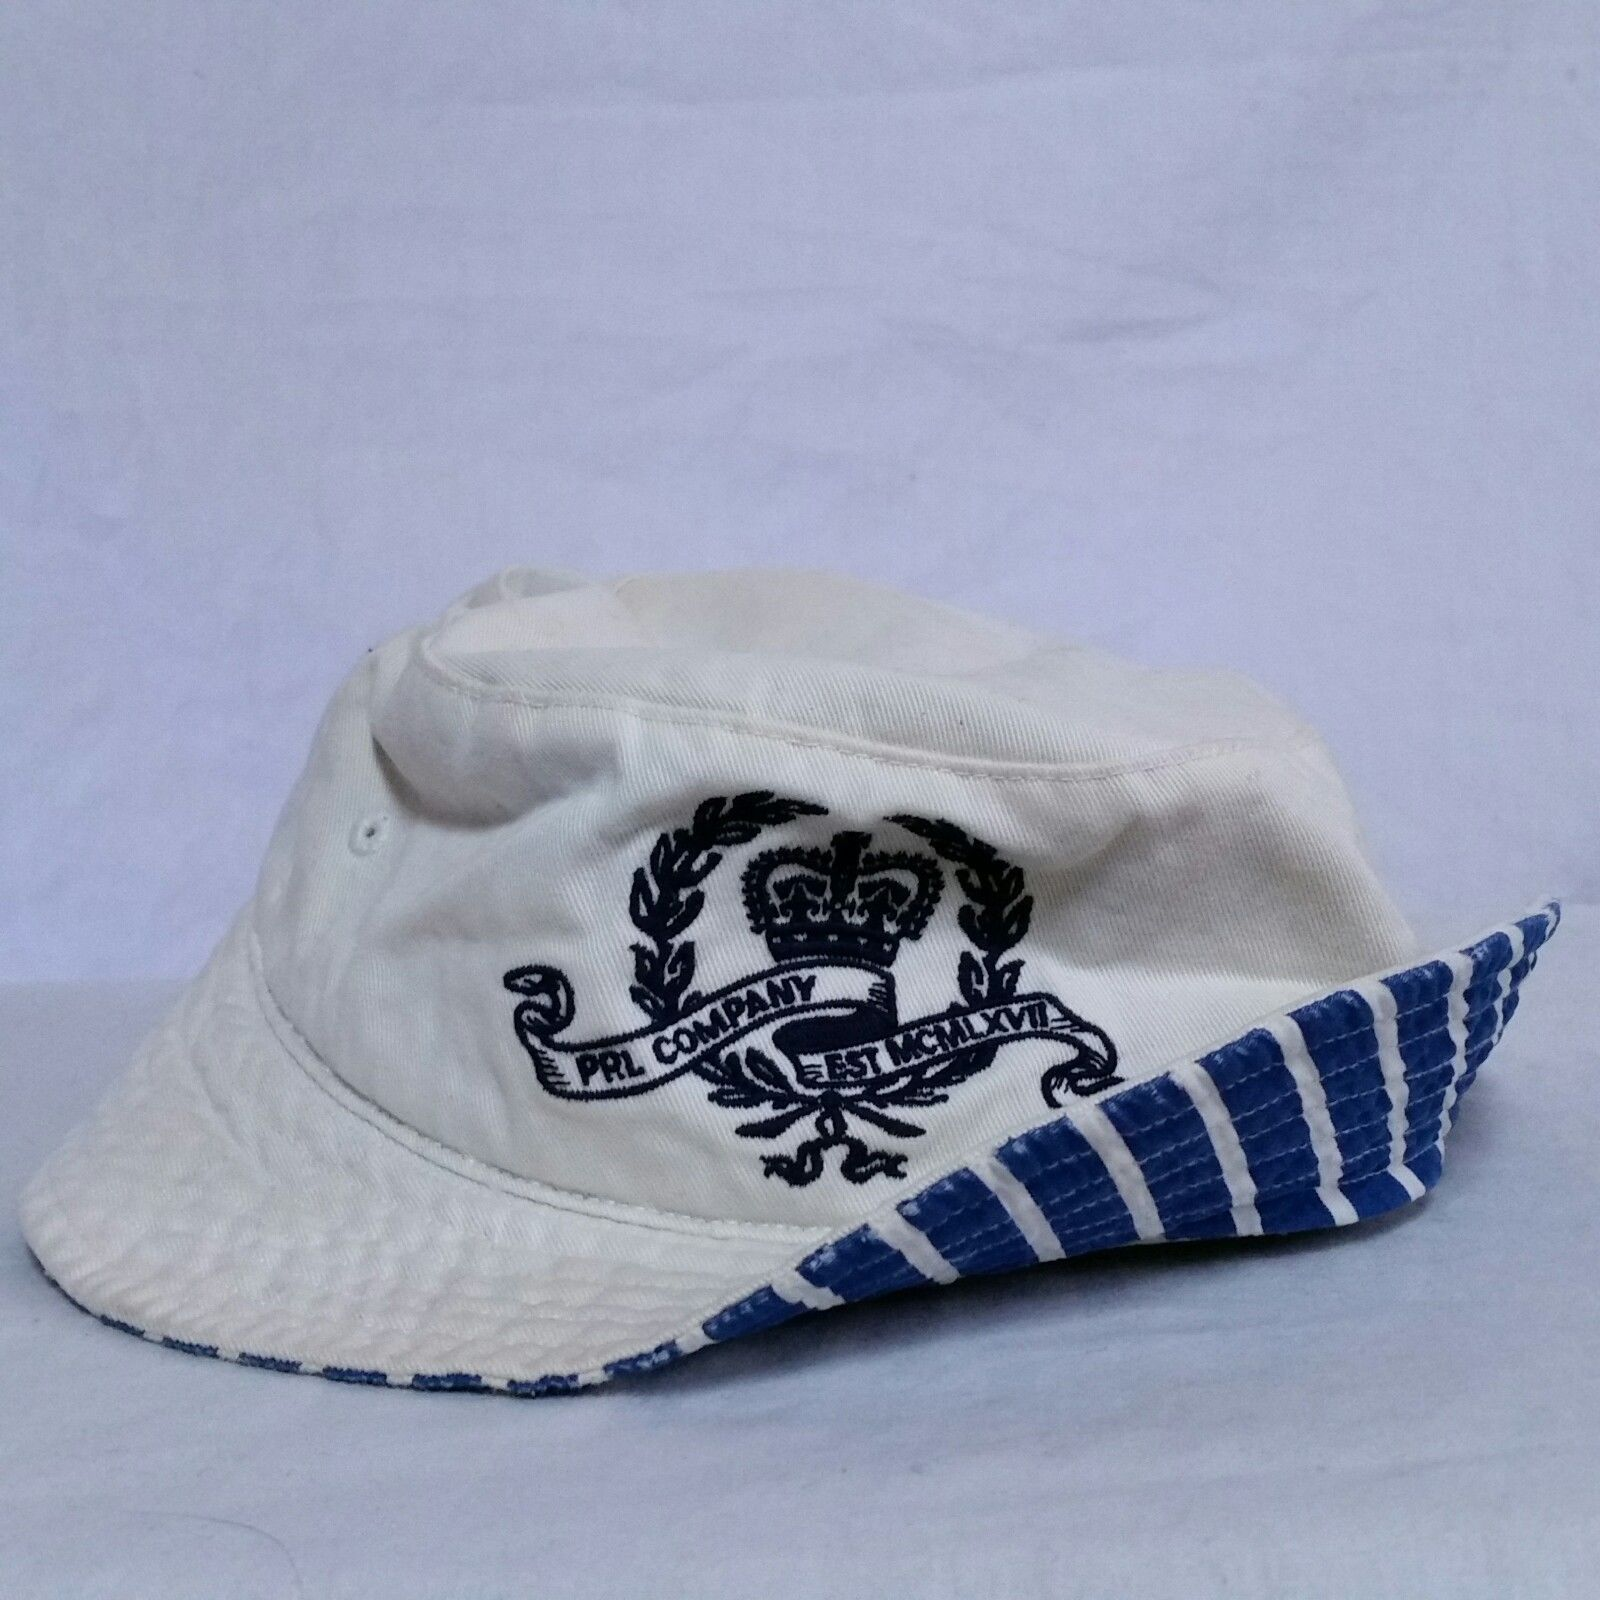 8e4b5583656 VTG Polo Ralph Lauren Bucket Hat Crest Crown and 50 similar items. S l1600